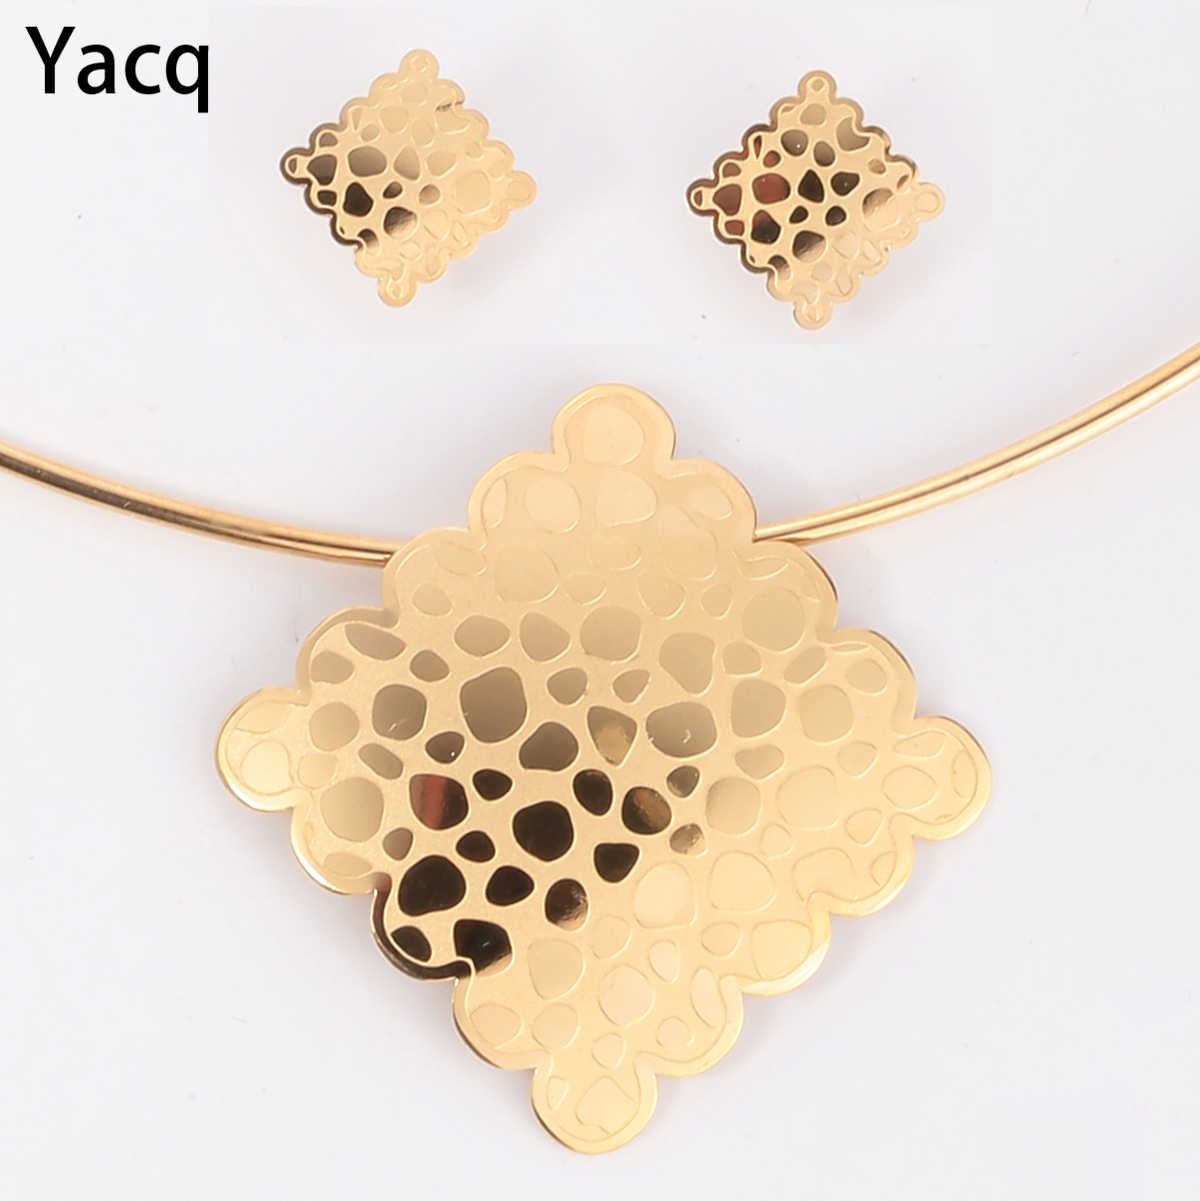 Yacq Choker Necklace Earrings Sets Women Stainless Steel Fashion Jewelry Gifts for Her Mom JN41 Dropshipping Gold Silver Color